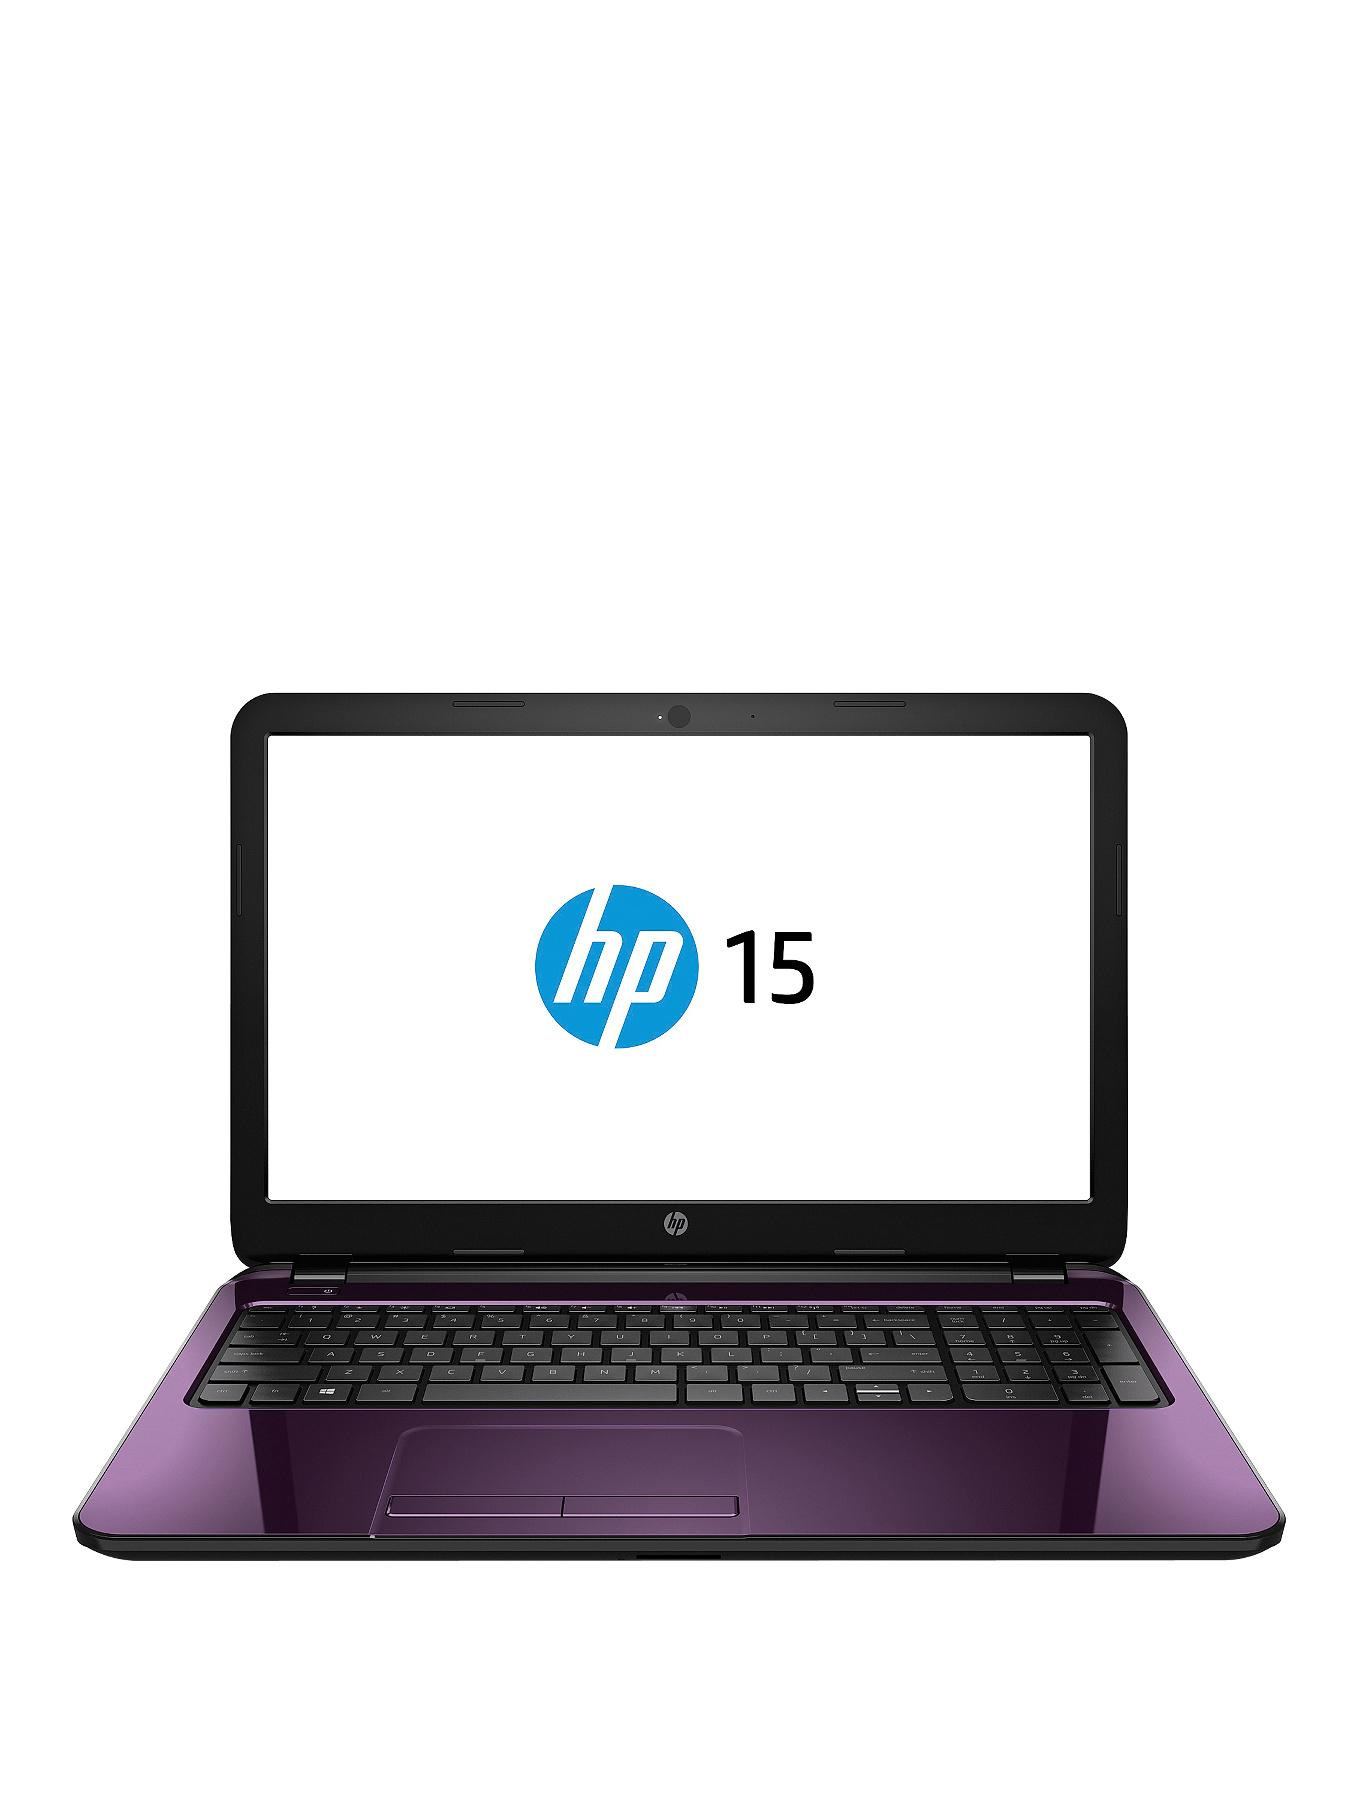 HP 15-r206na Intel Pentium Processor, 4Gb RAM, 1Tb Hard Drive, Wi-Fi, 15.6 inch Touchscreen Laptop with Optional Microsoft Office 365 Personal - Purple